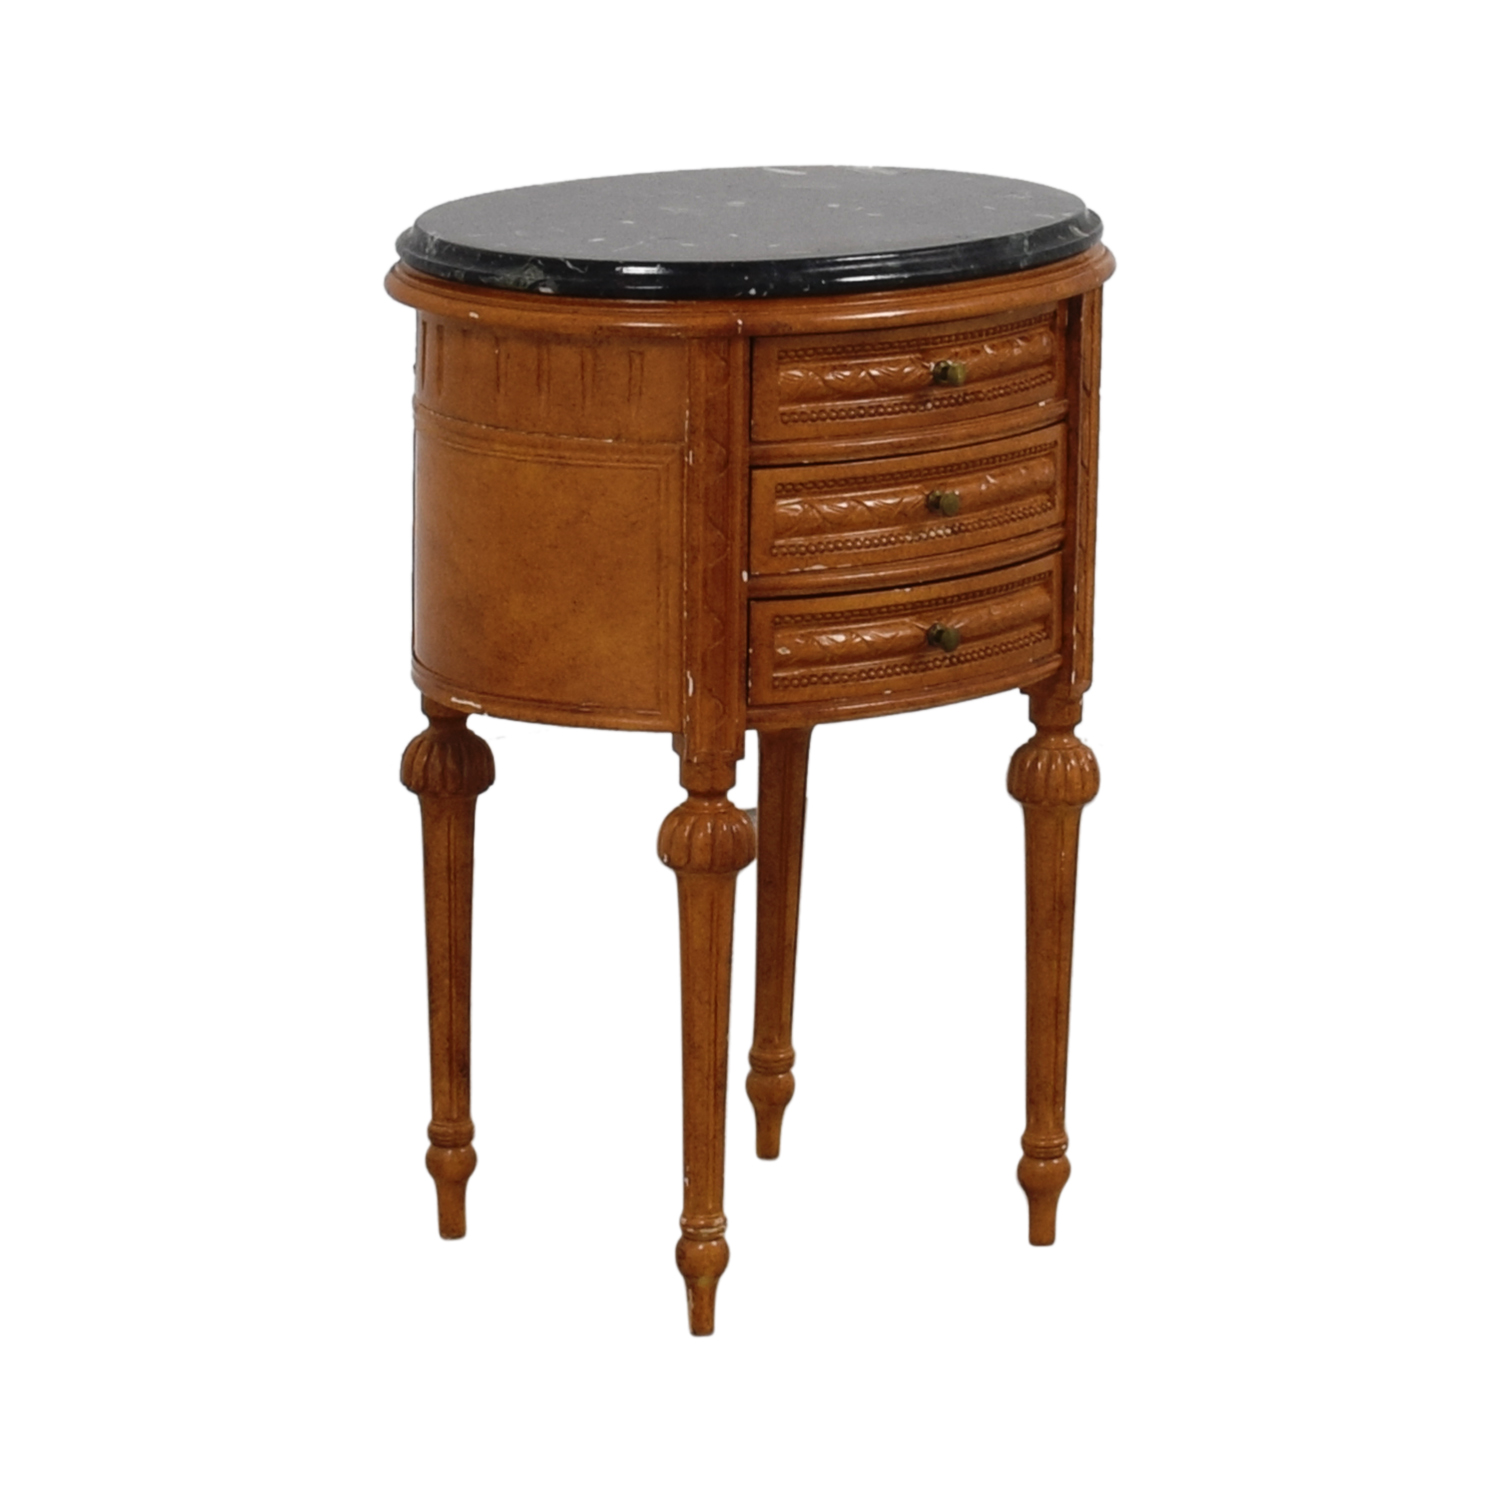 Antique Oval Marble Top Side Table End Tables